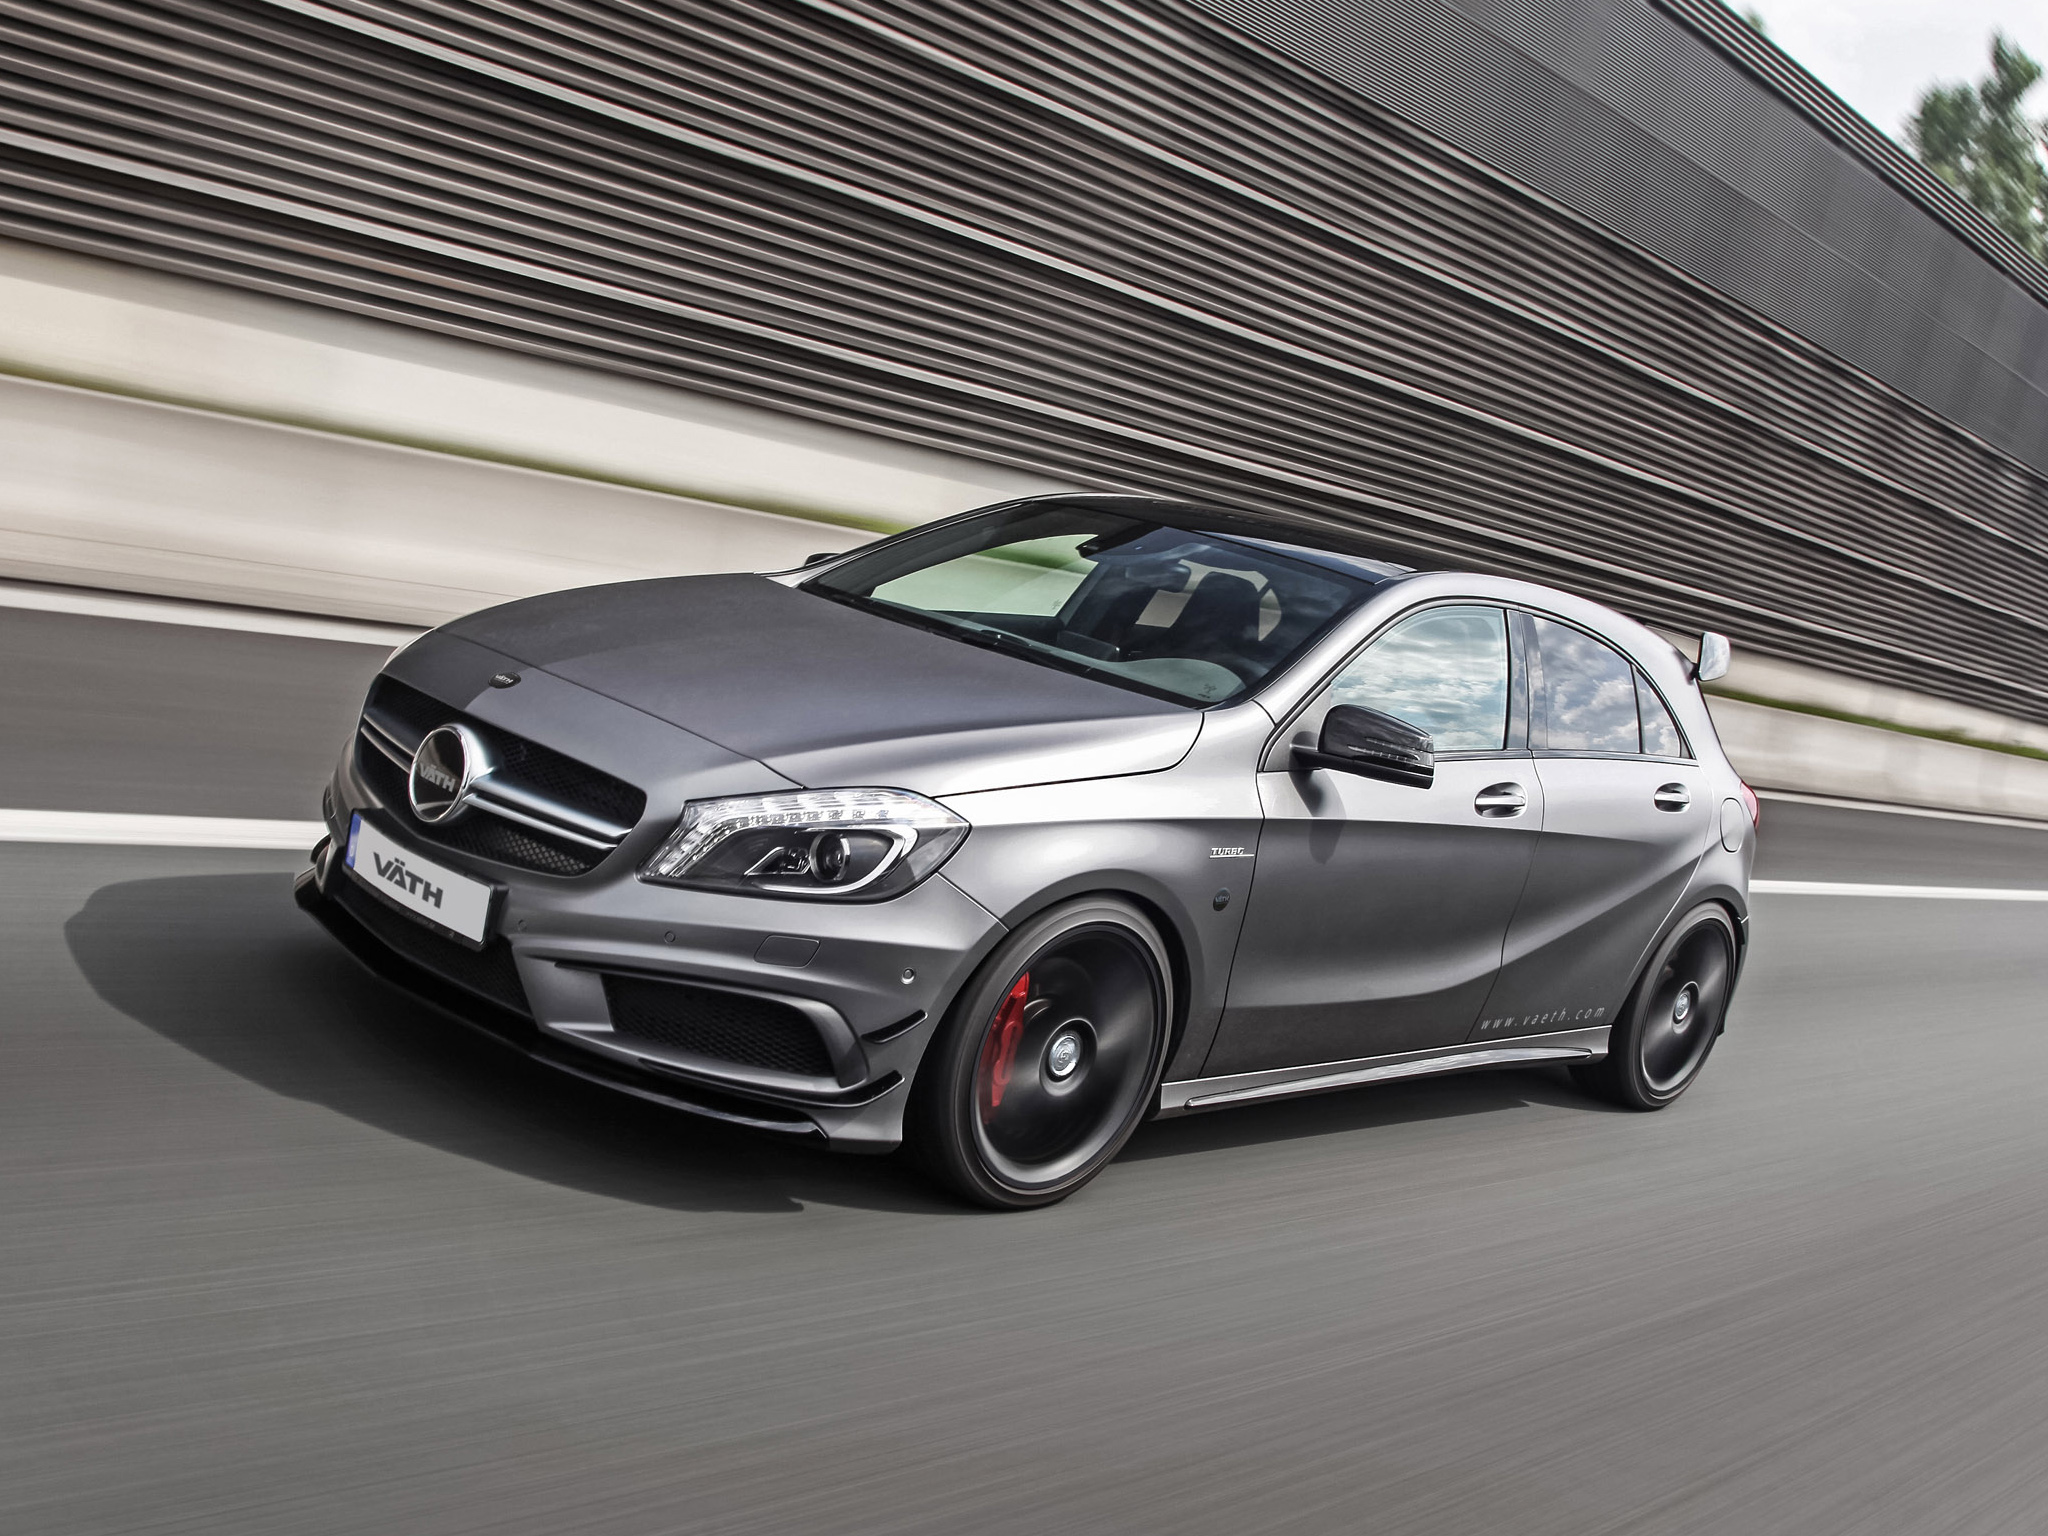 mercedes benz a 45 amg tuned by vath to 425 hp autoevolution. Black Bedroom Furniture Sets. Home Design Ideas